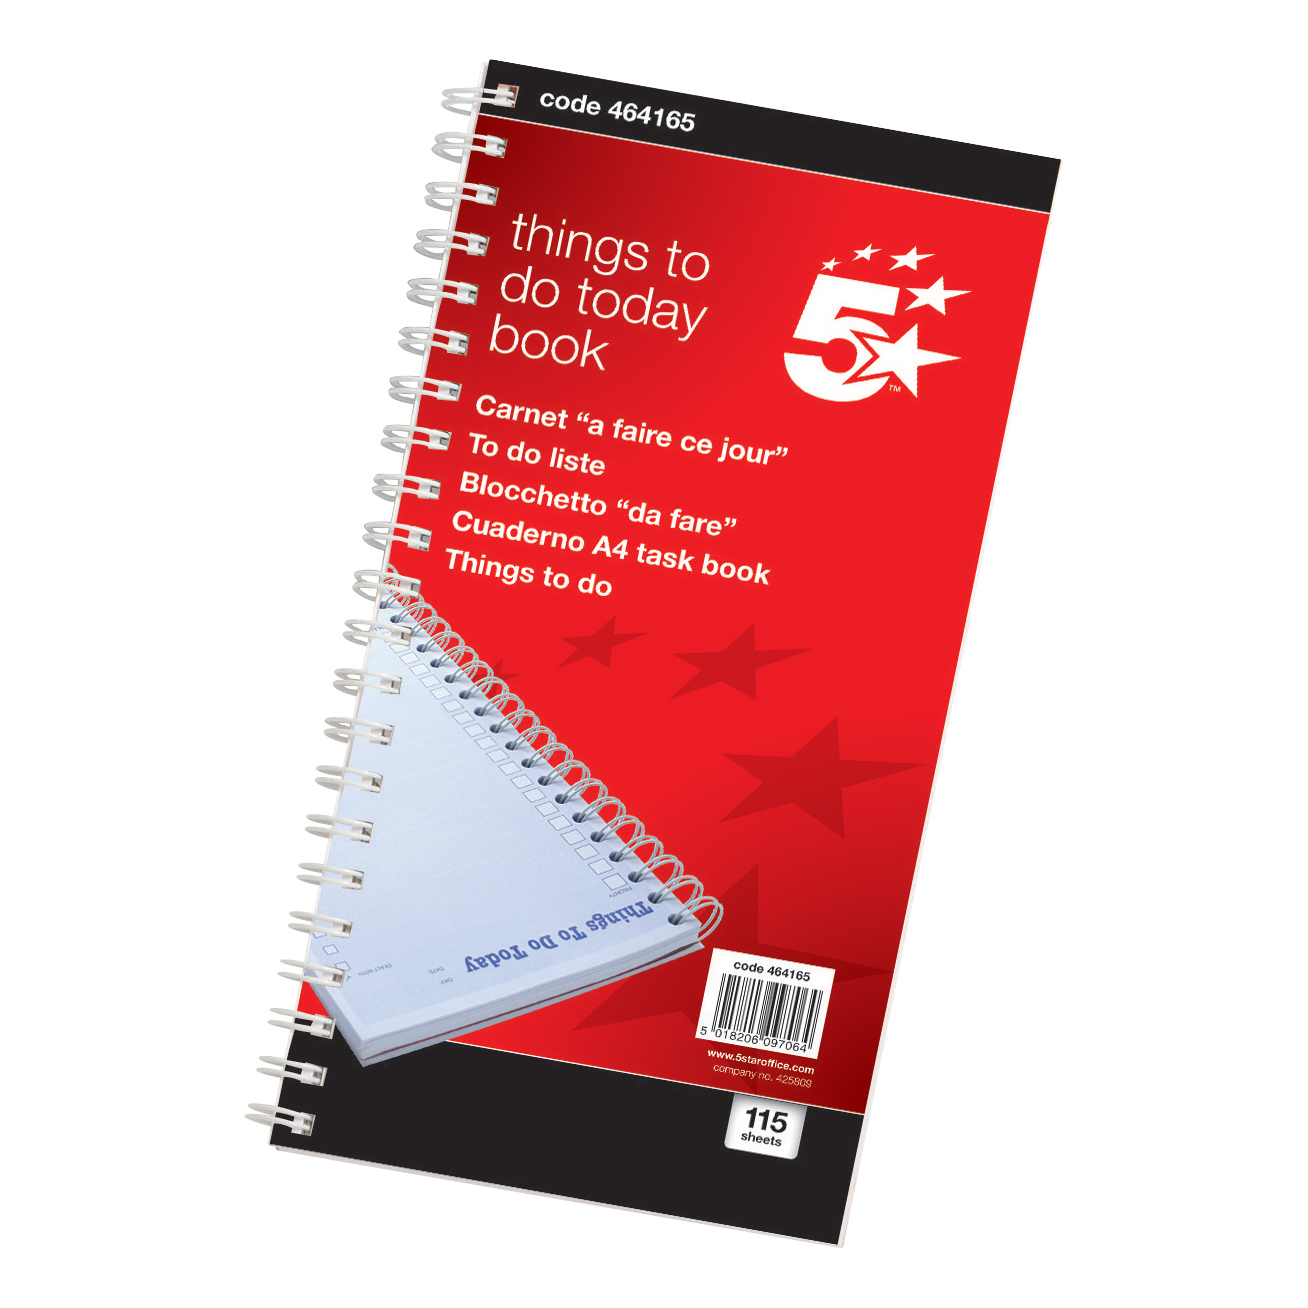 5 Star Office Things To Do Today Book Wirebound 6 Months 115 Pages 275x150mm